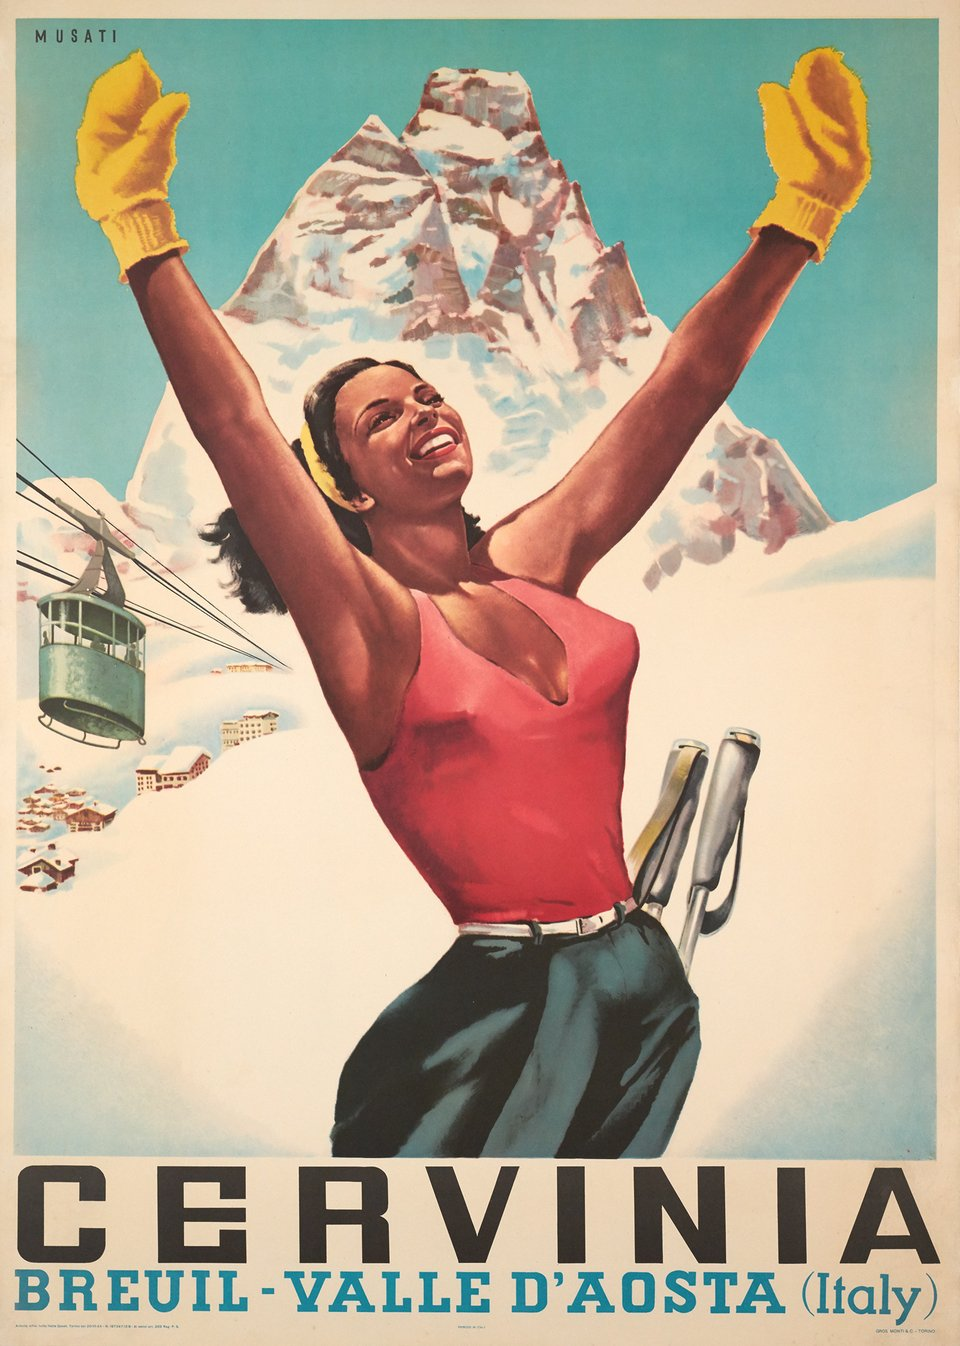 Cervinia, Breuil - Valle d'Aosta (Italy) – Affiche ancienne –  MUSATI – 1953